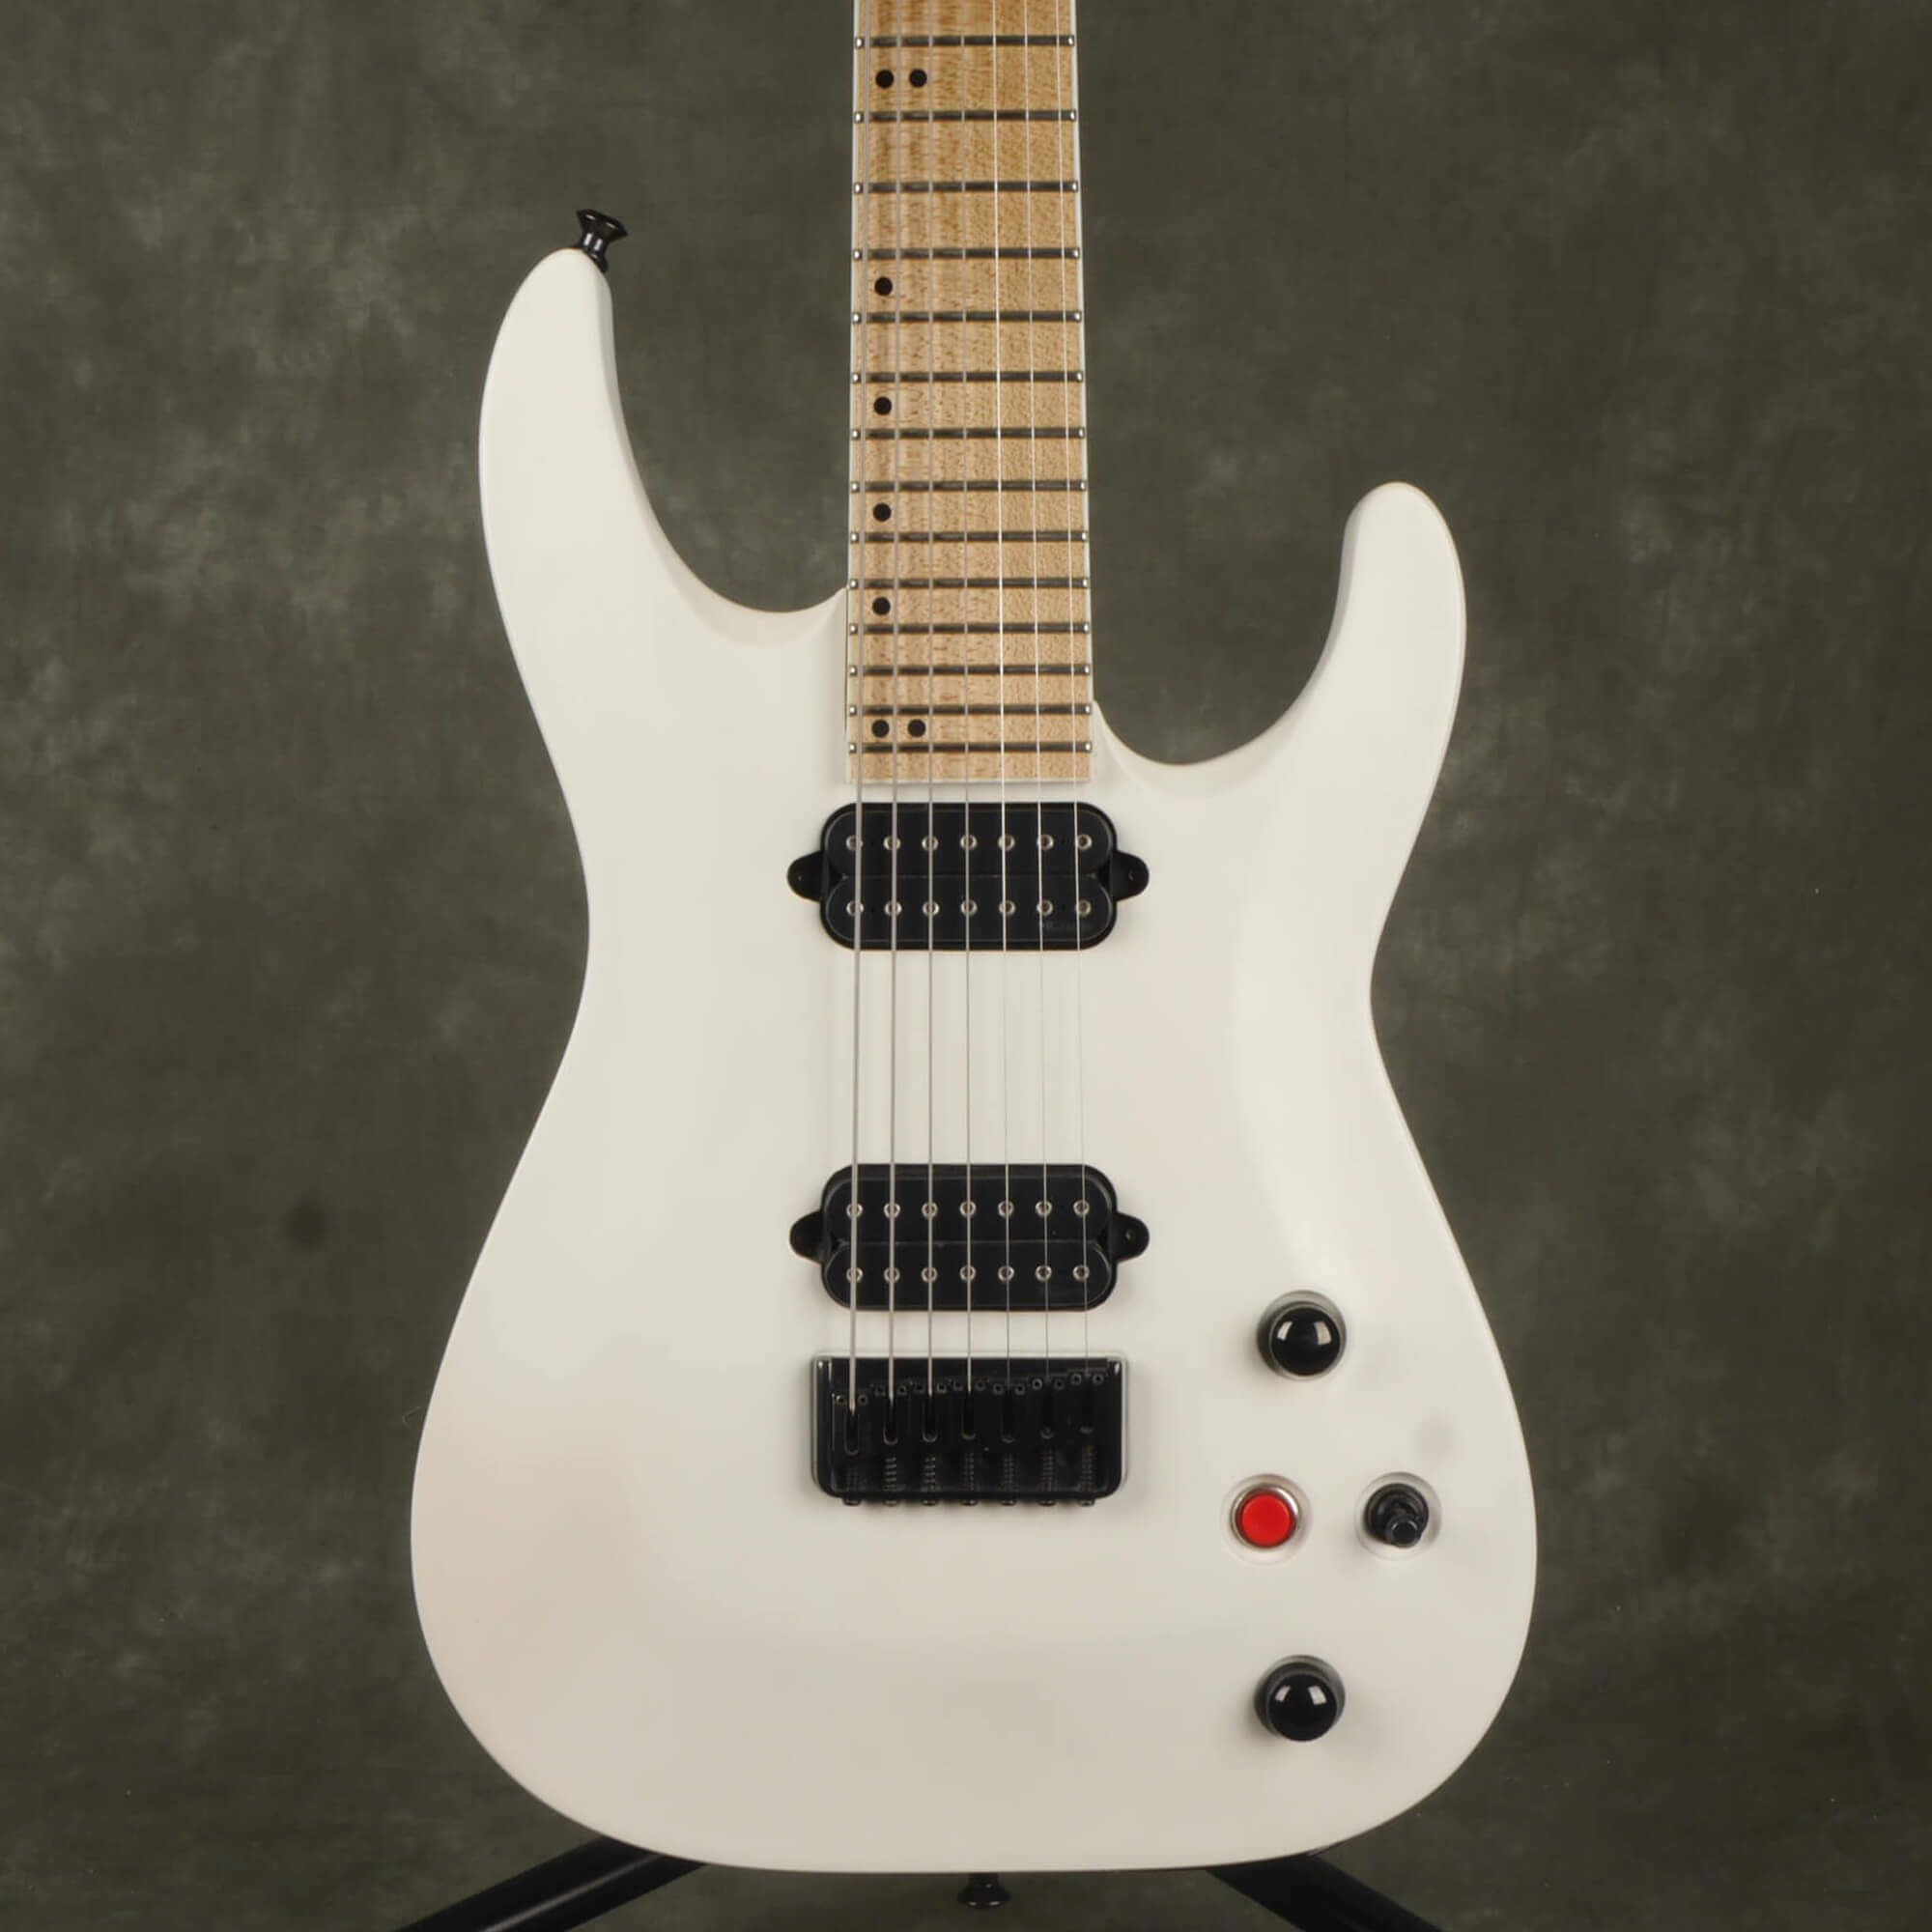 Jackson Pro Series DKA7 Dinky 7-String Electric Guitar - Satin White - 2nd Hand